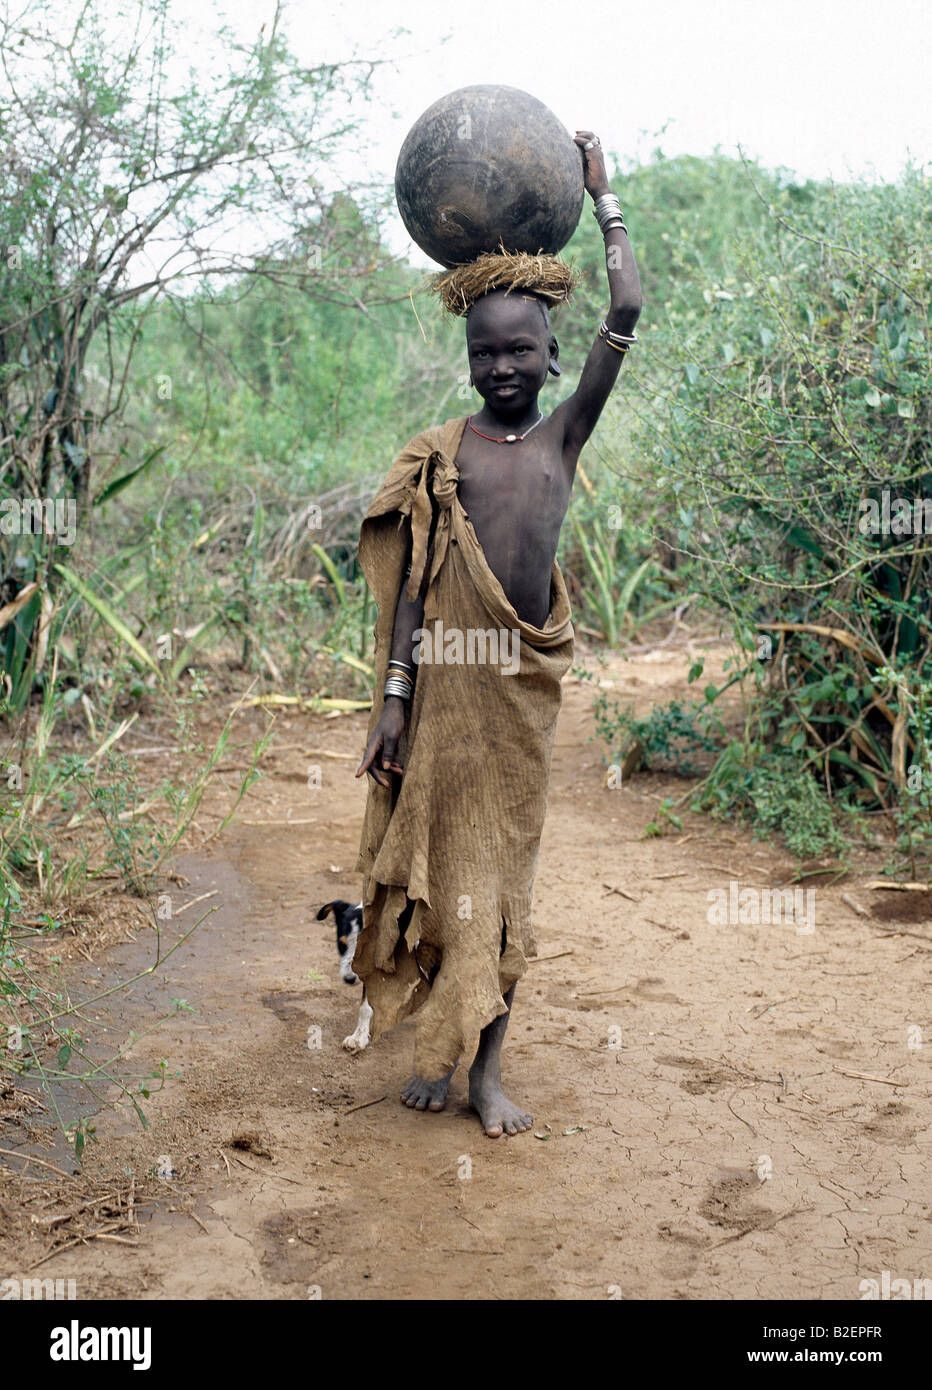 A Mursi girl, accompanied by her dog, carries a large clay pot to collect water from the Omo River. Stock Photo